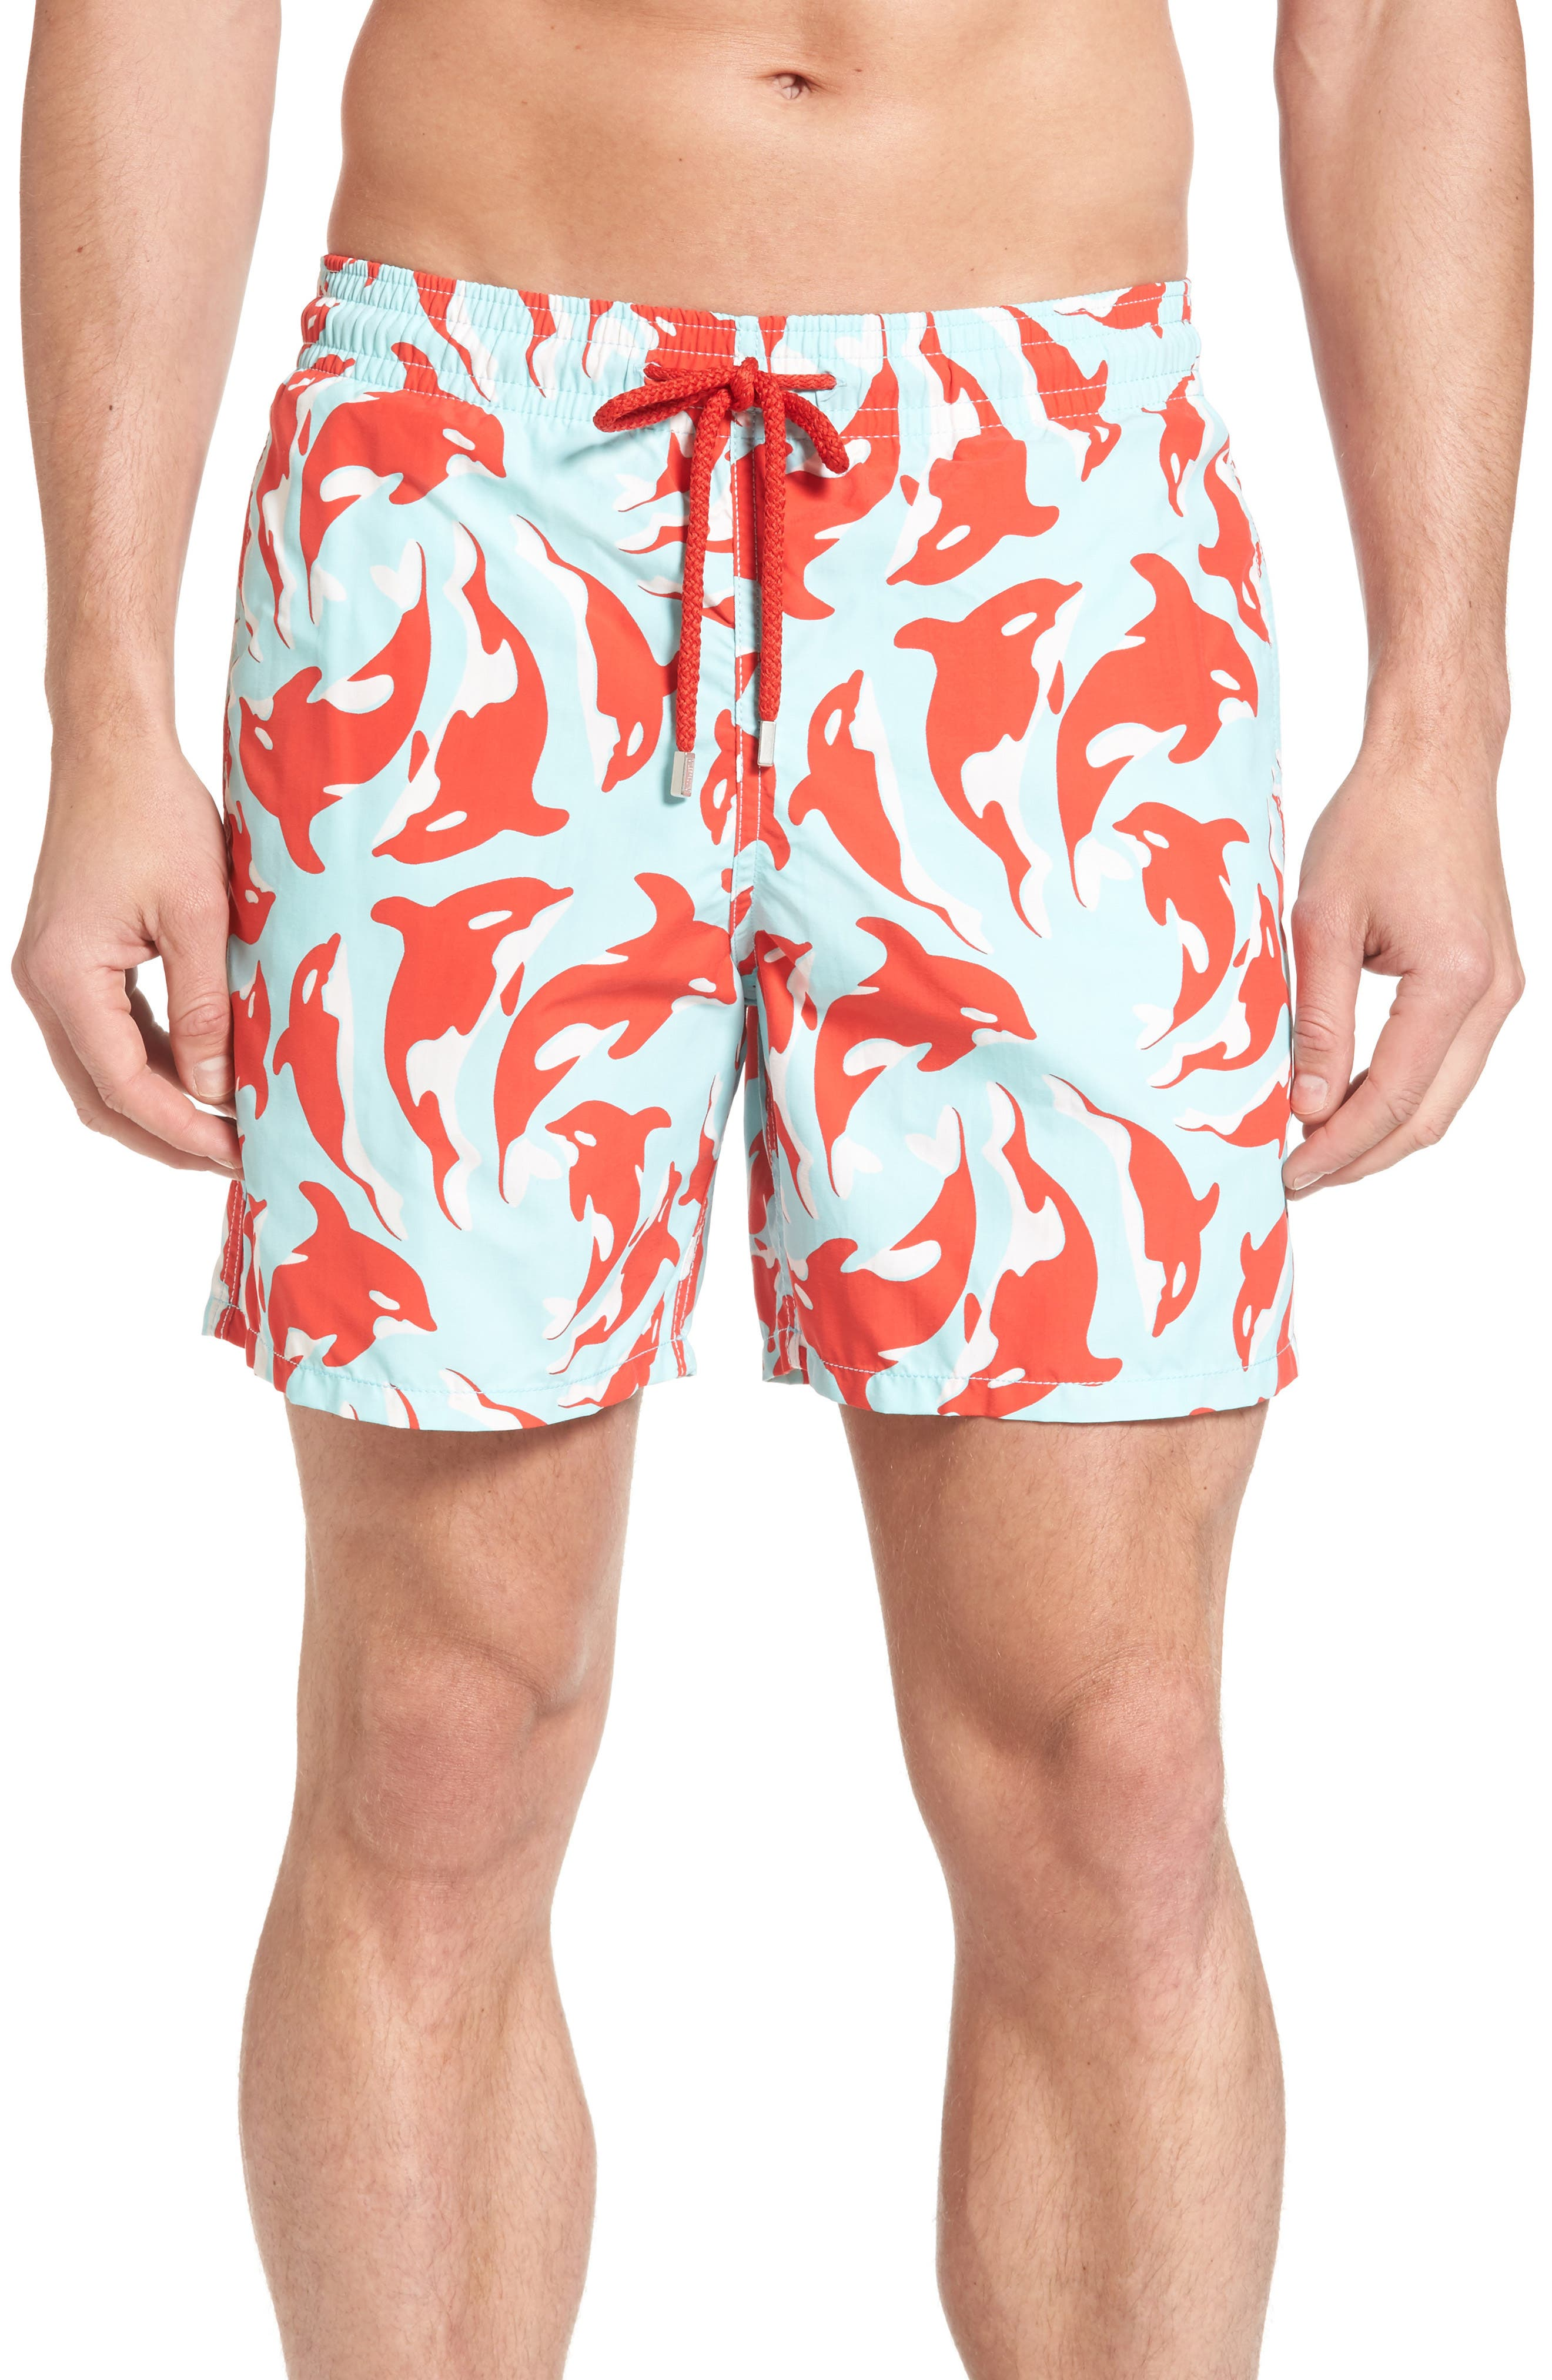 Moorea Galaks Print Swim Trunks,                         Main,                         color, FROSTED BLUE